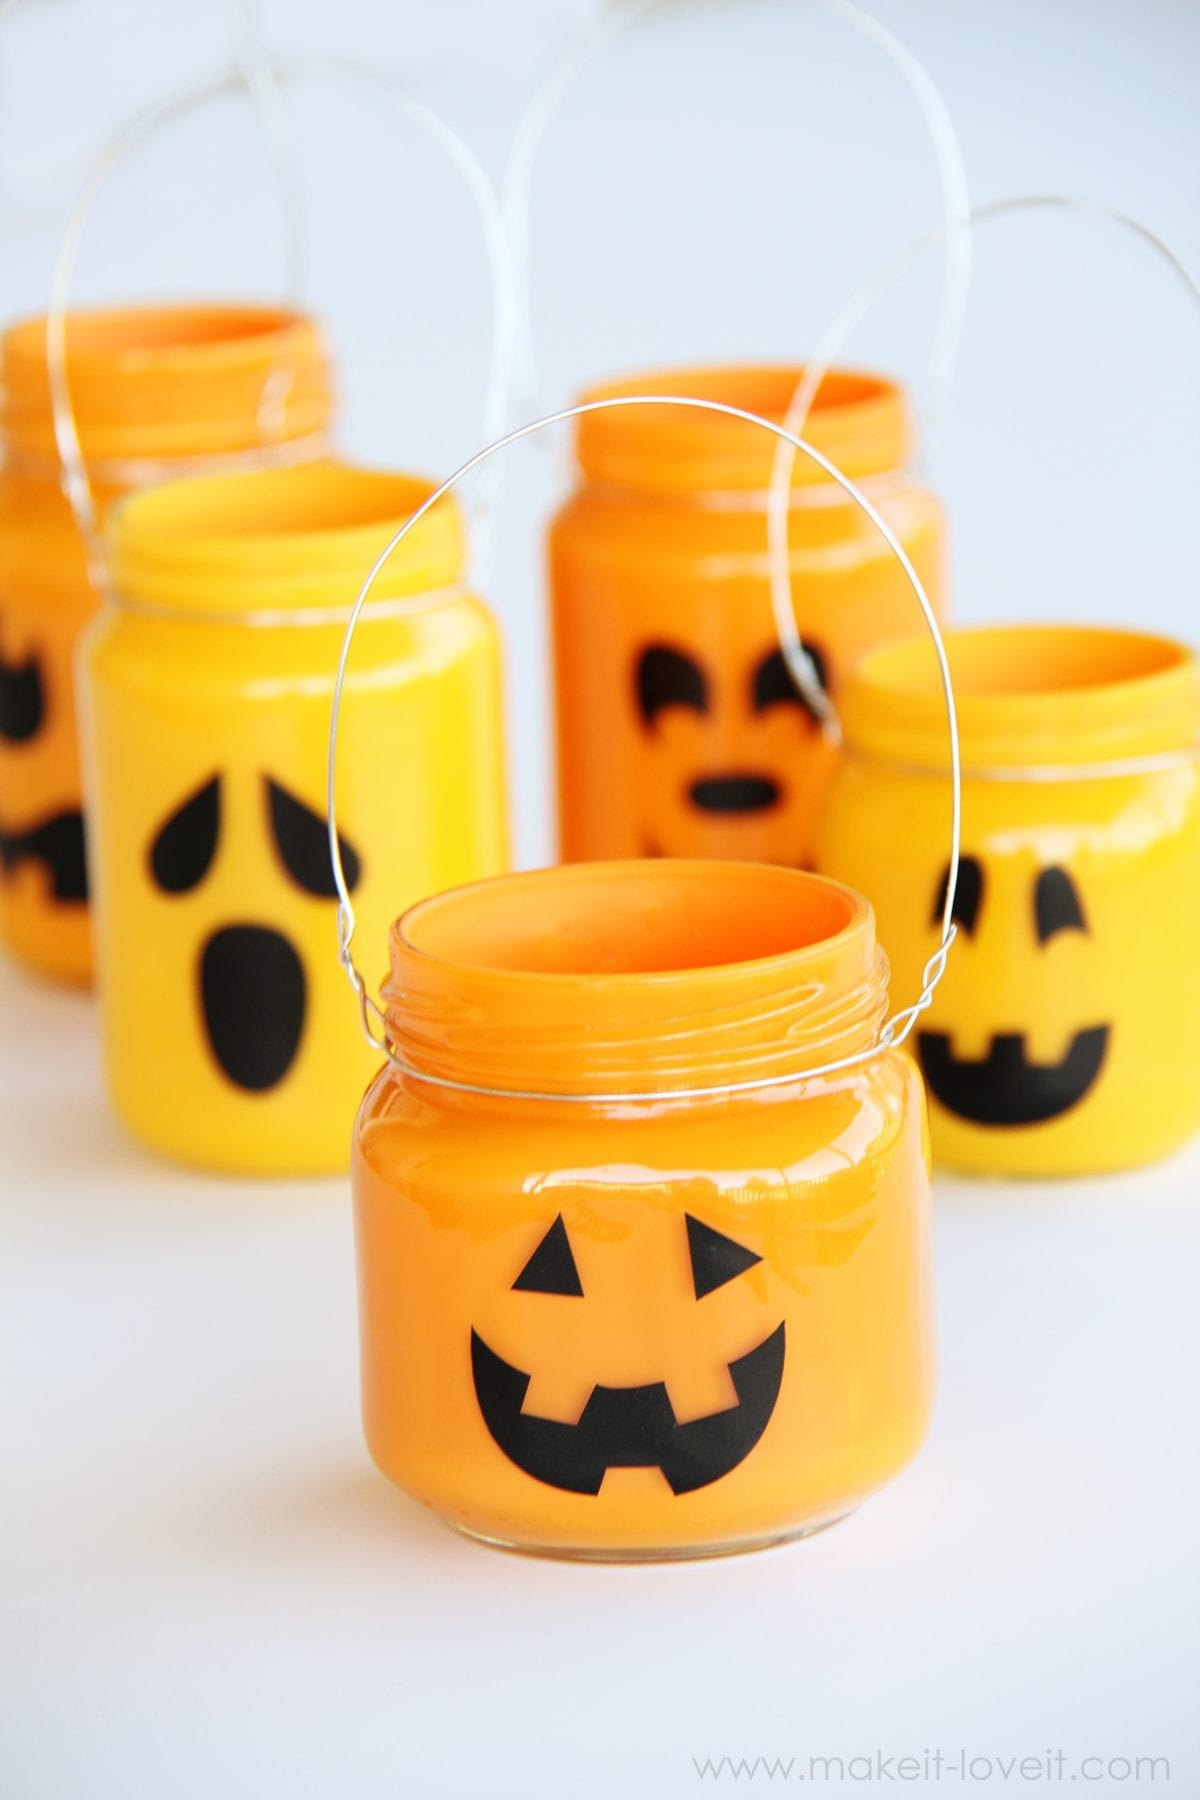 Pumpkin Jars: Add treats, candles, or nothing at all…